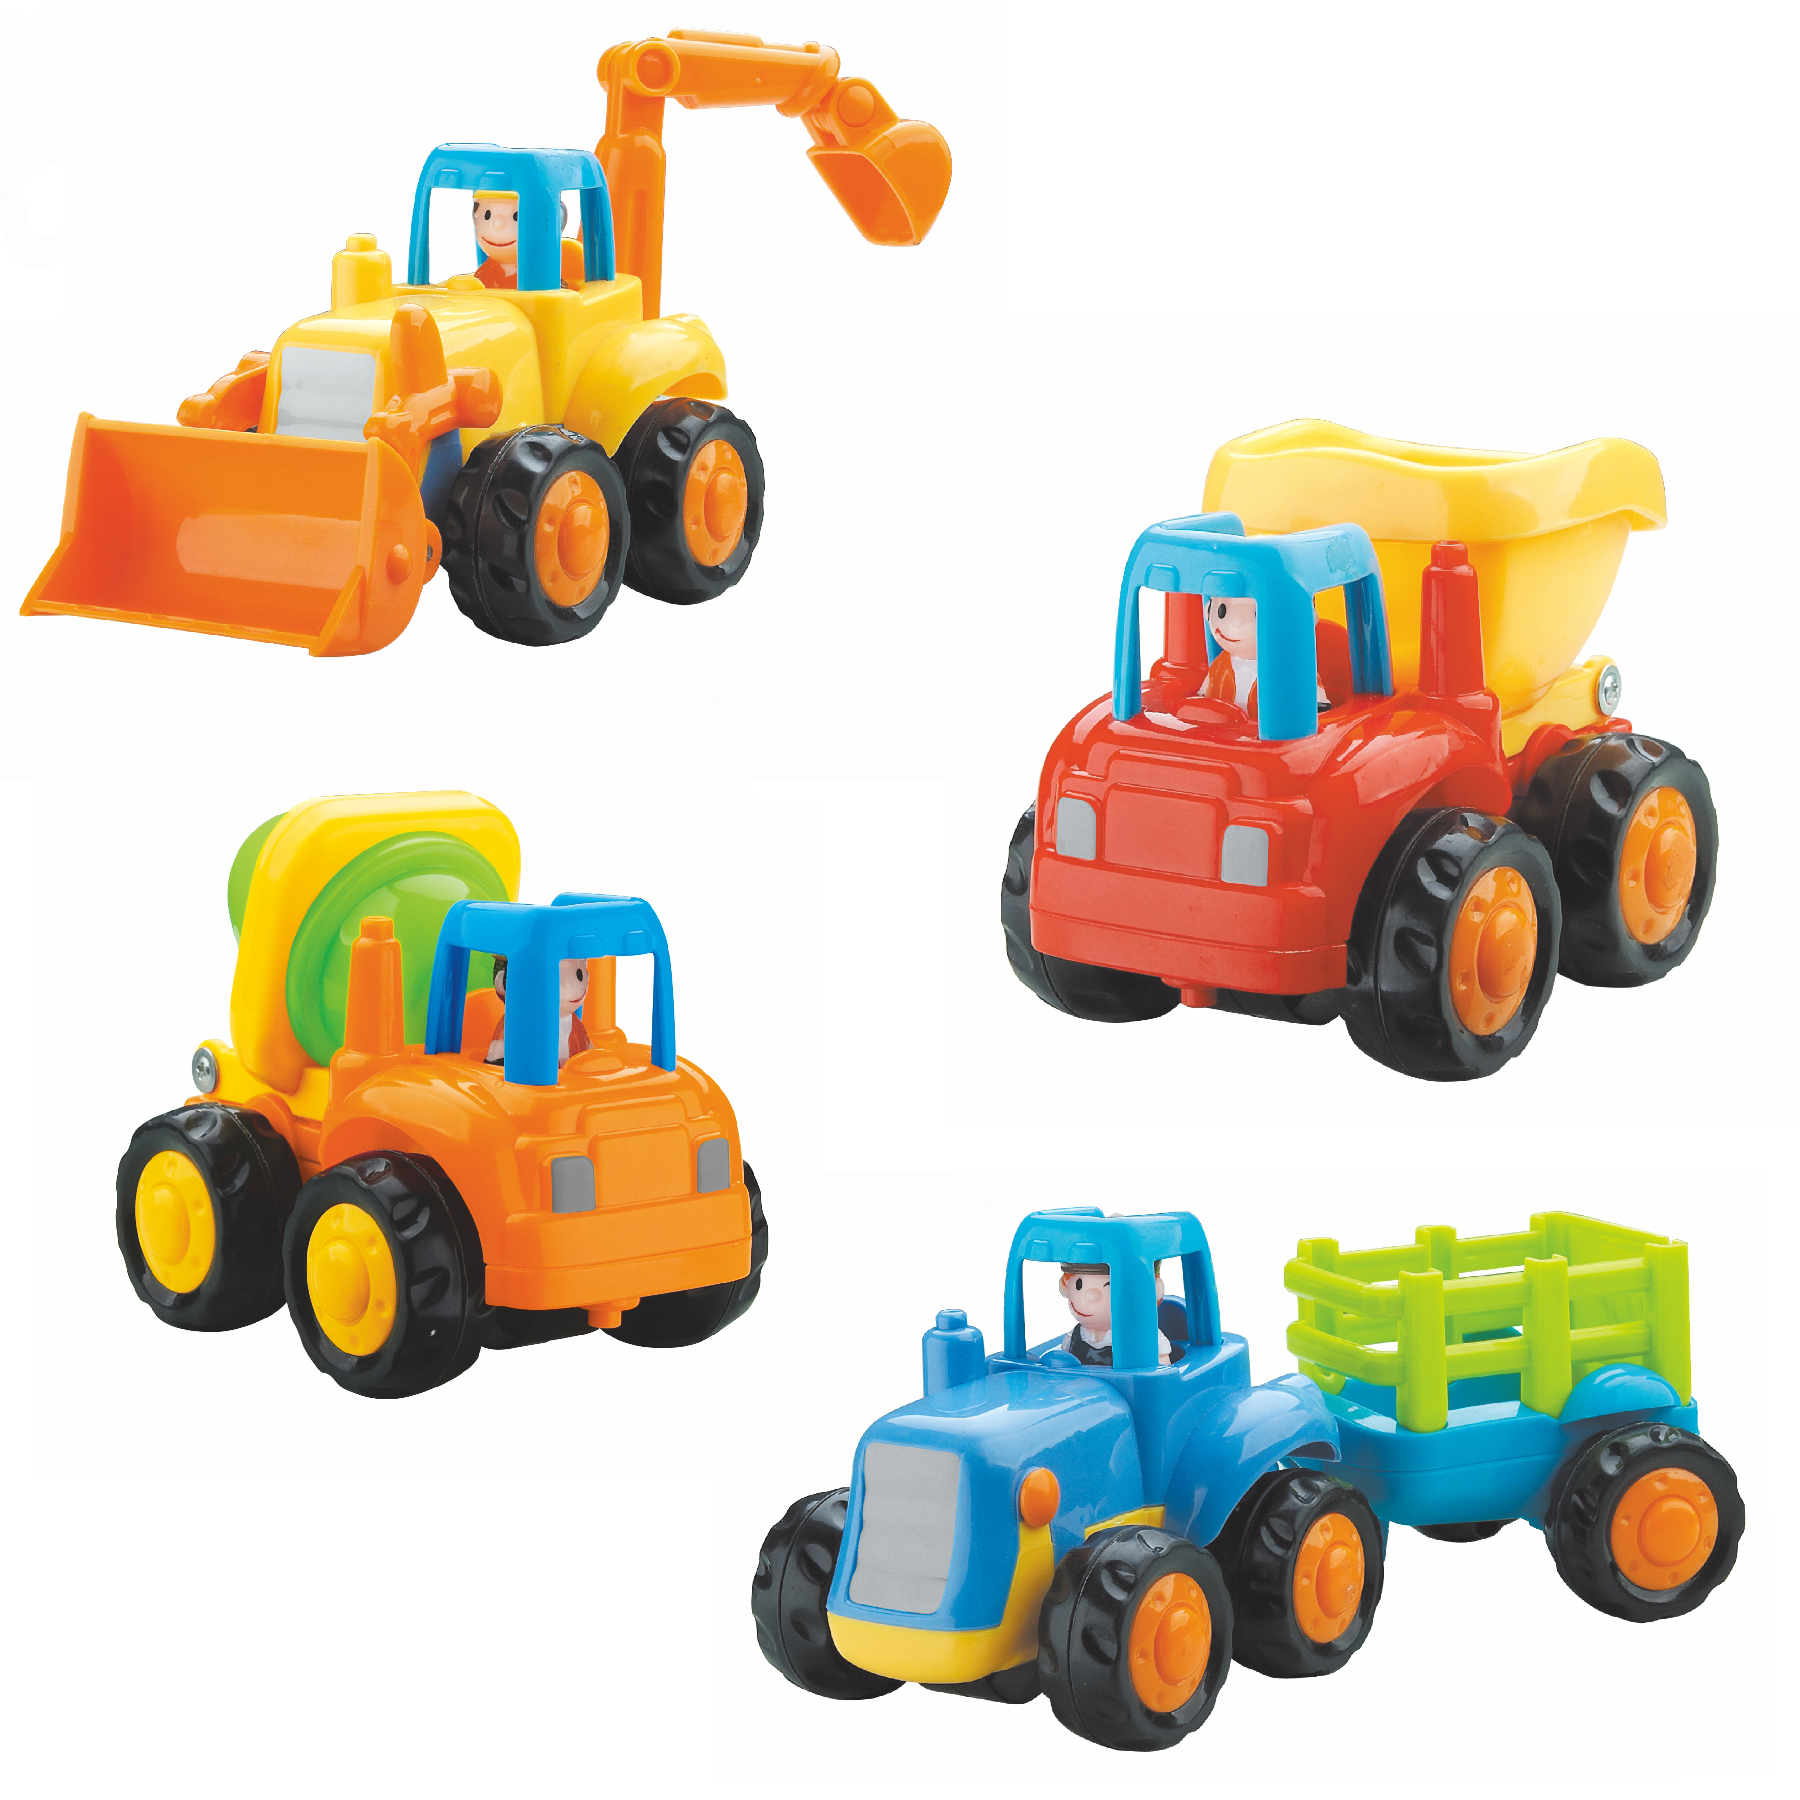 Buy Farm Toys Online for Toddlers | Country Vehicles Toys for Kids